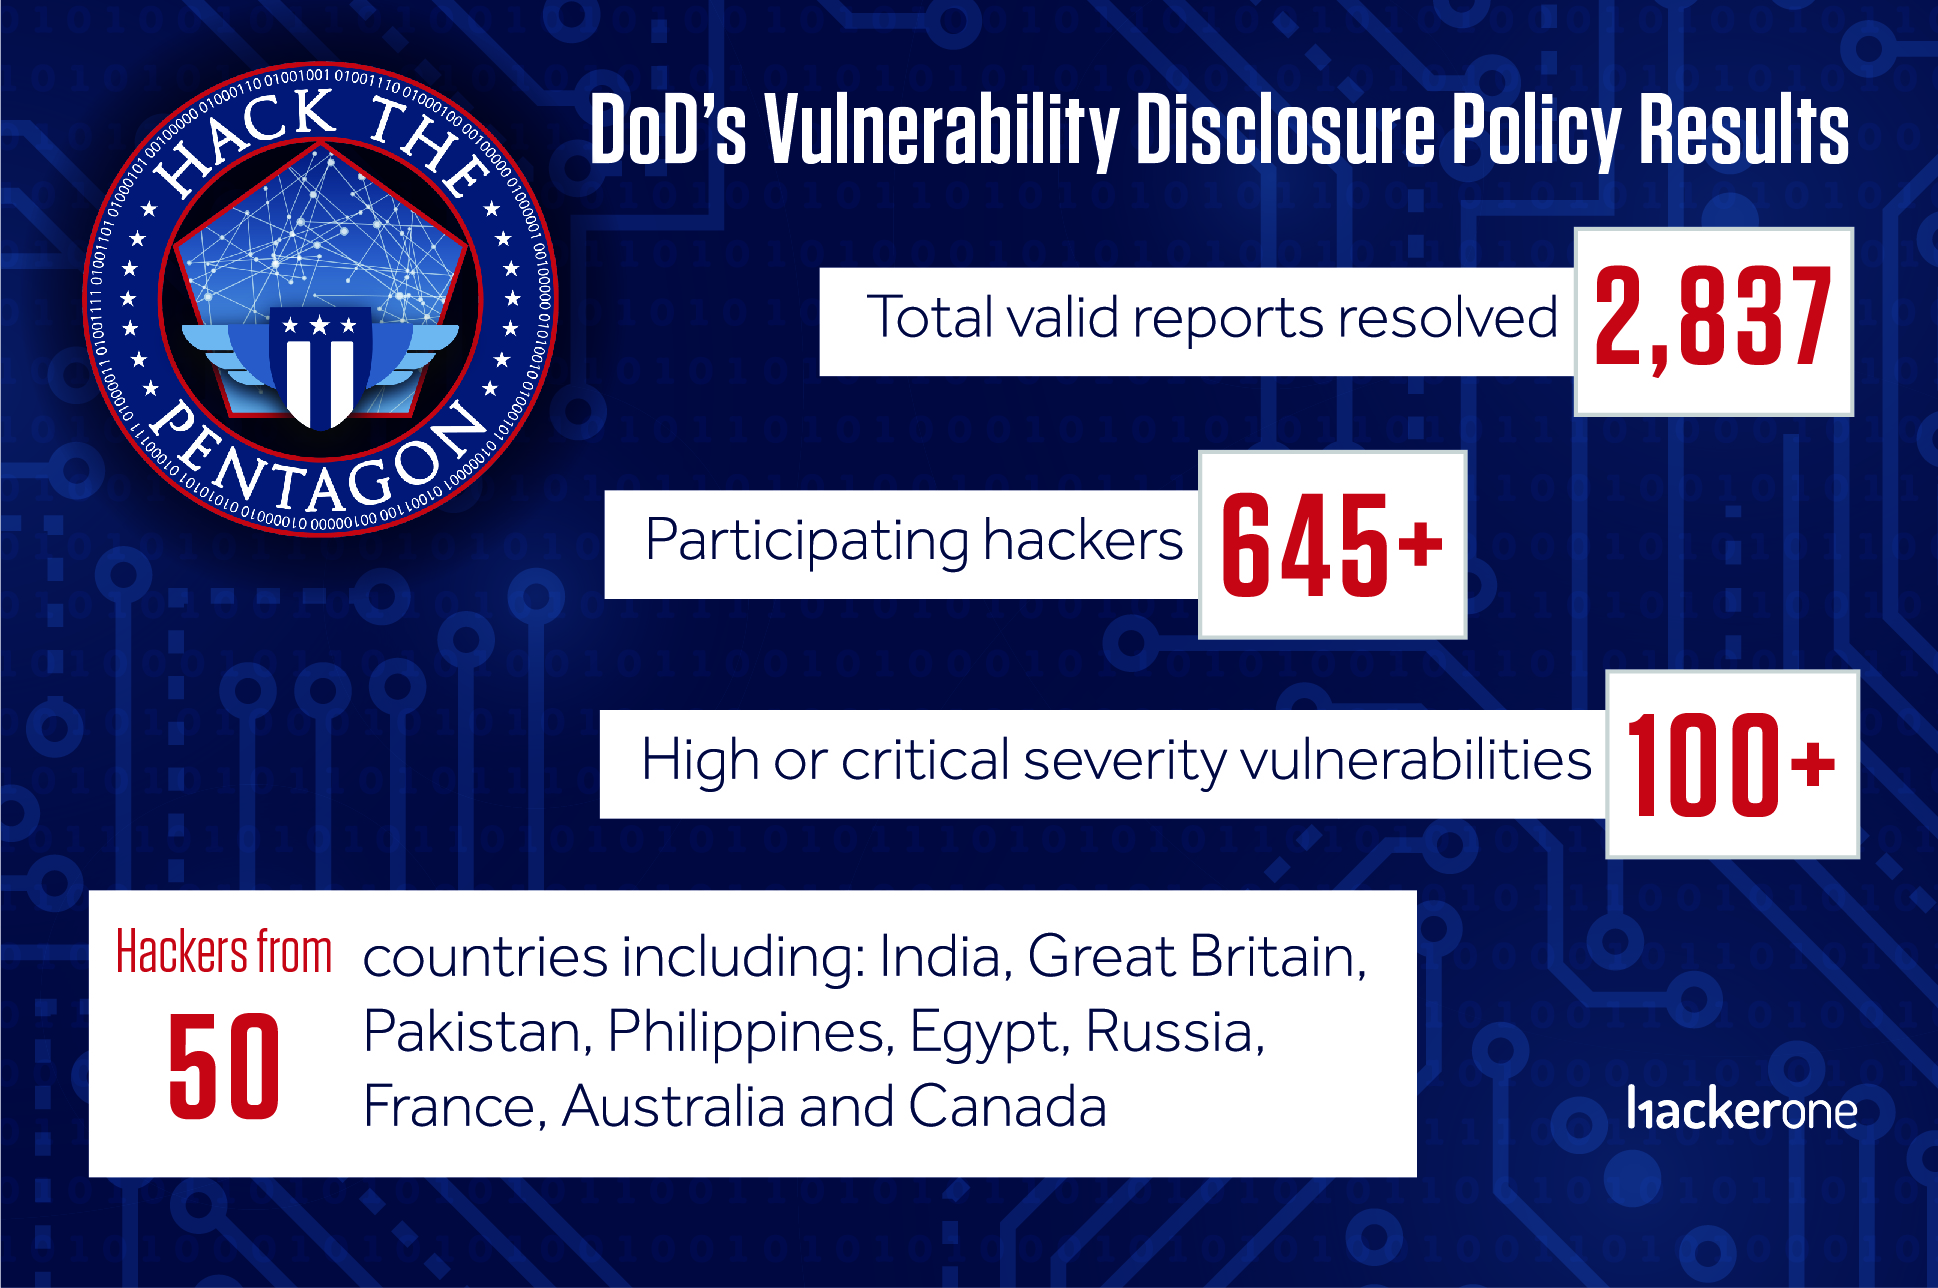 Bug bounty programs and a vulnerability disclosure policy allowed Pentagon fix thousands of flaws